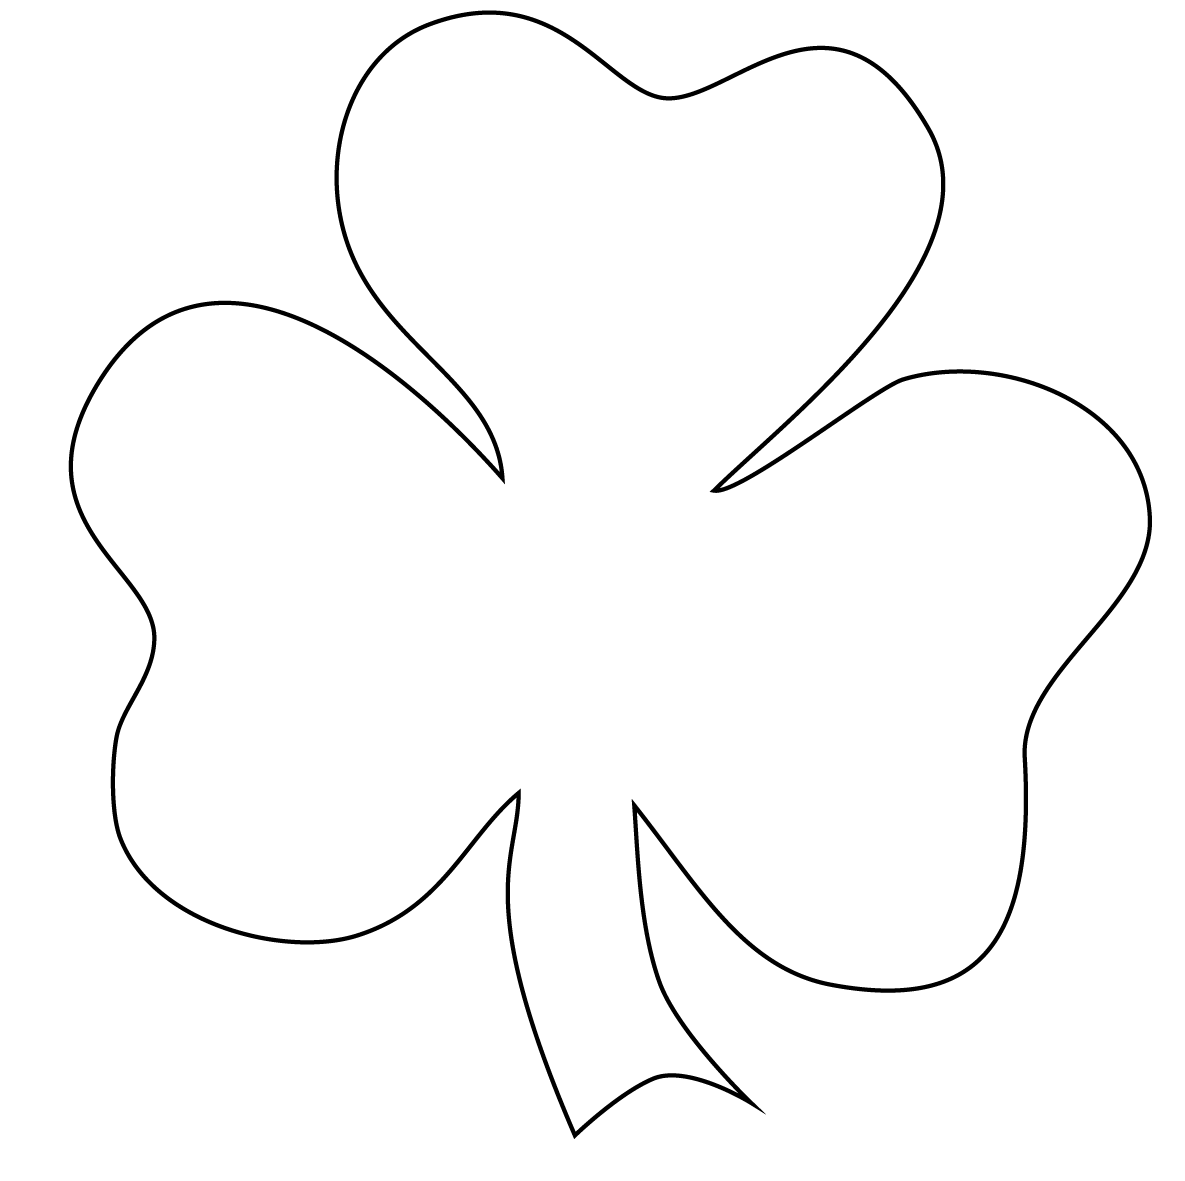 Free Shamrock Outline Download Free Clip Art Free Clip